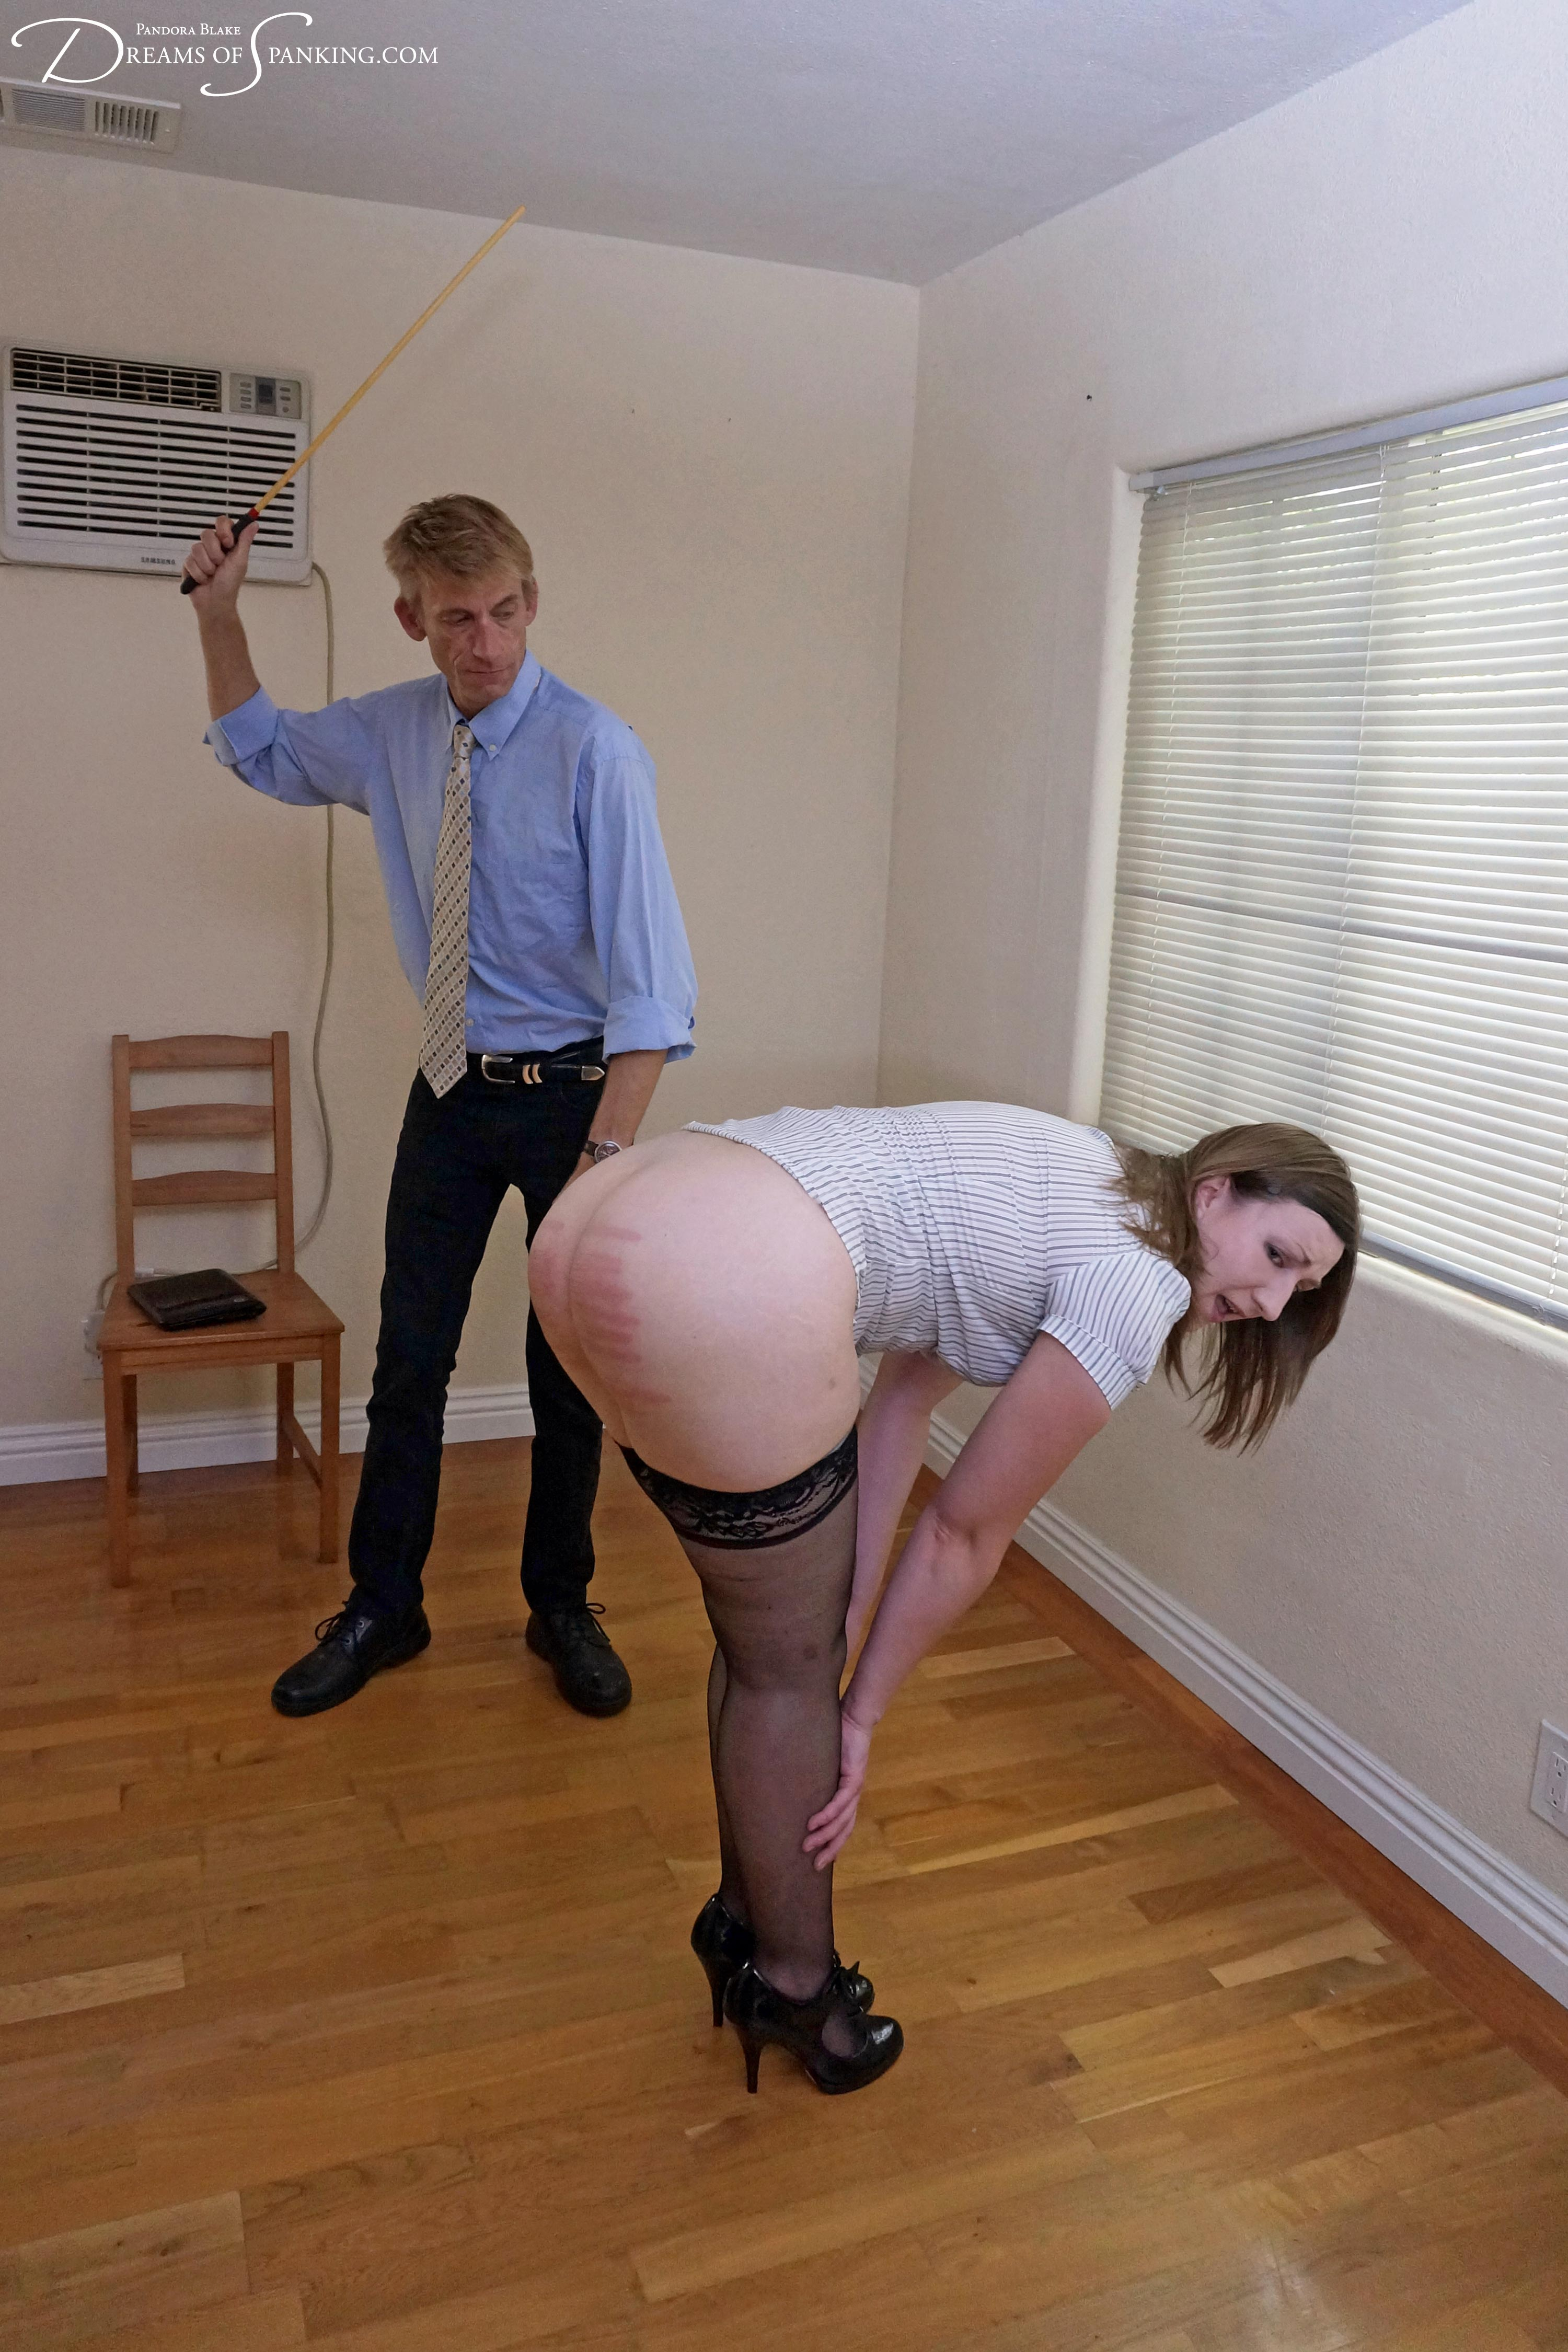 Touching my toes for a cold caning - Pandora Blake